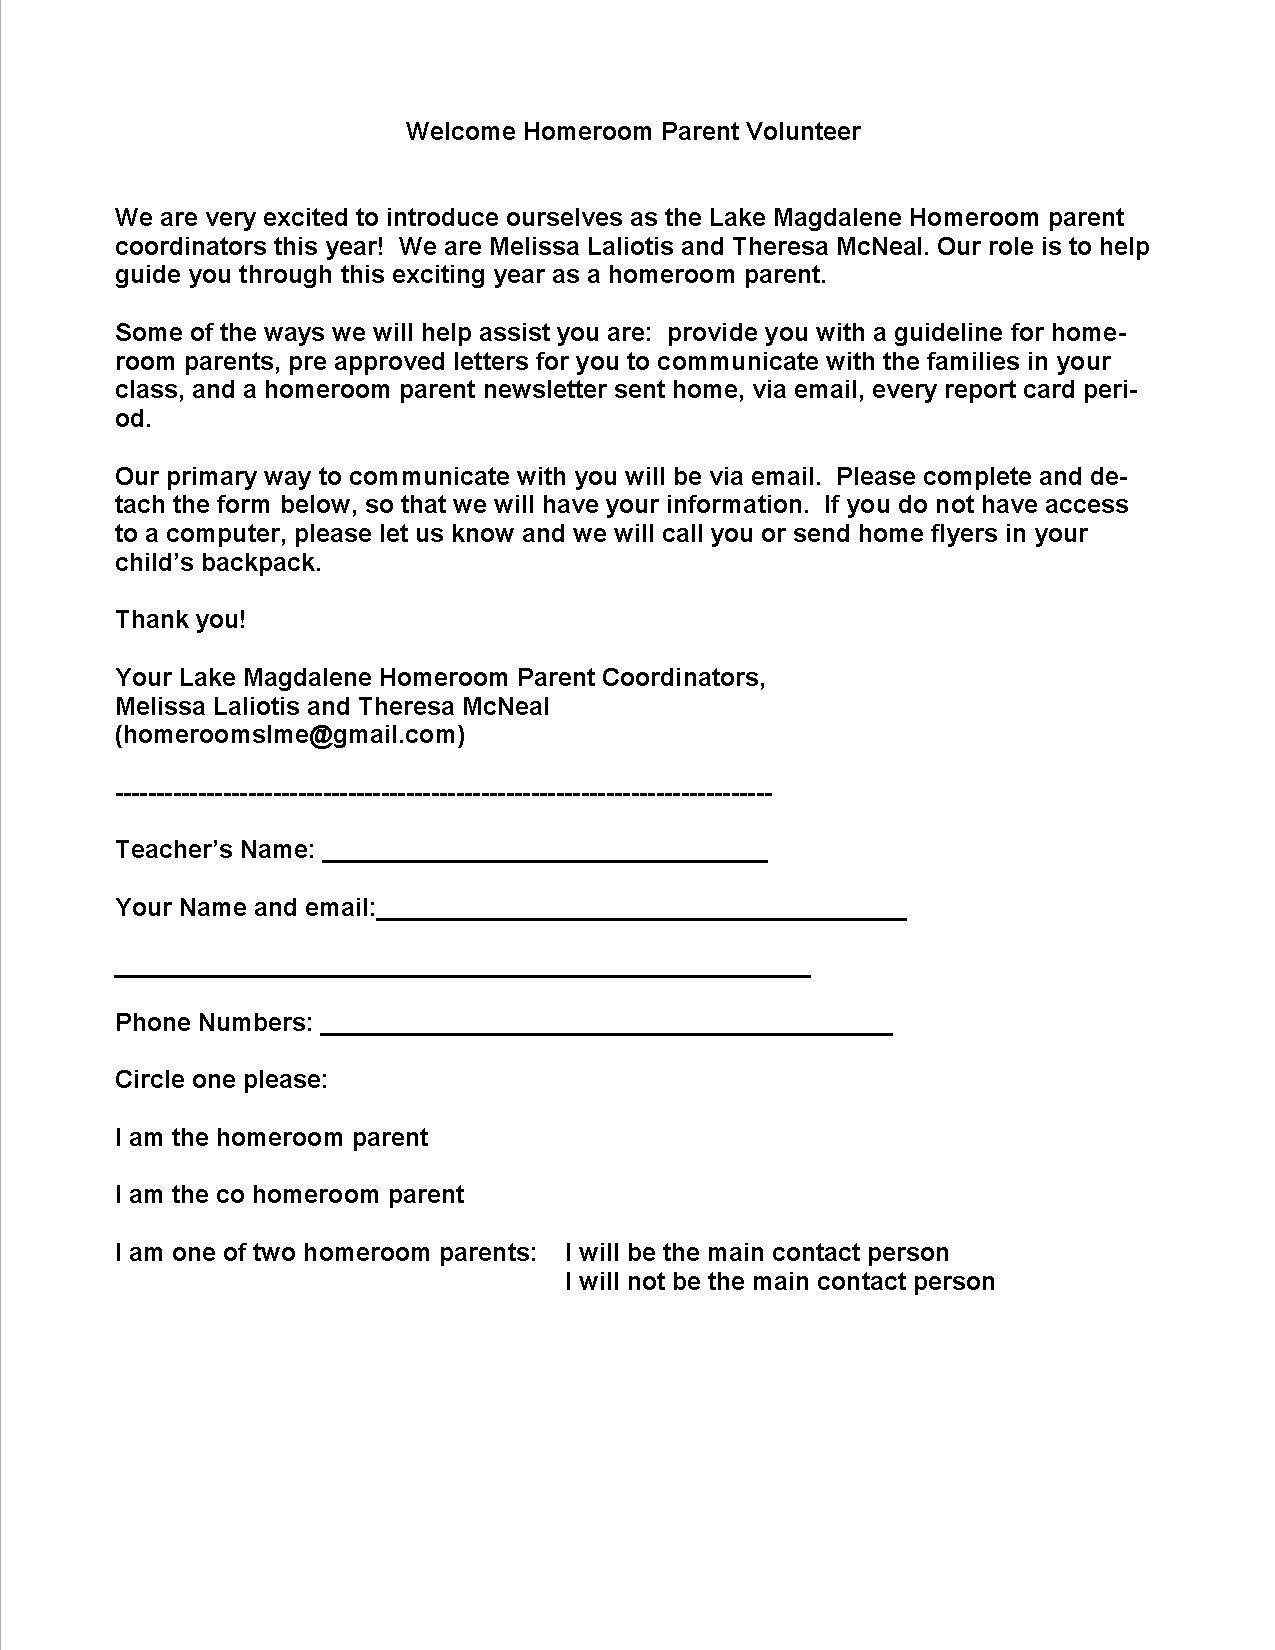 for sale by owner letter template Collection-for sale by owner letter template 9-q